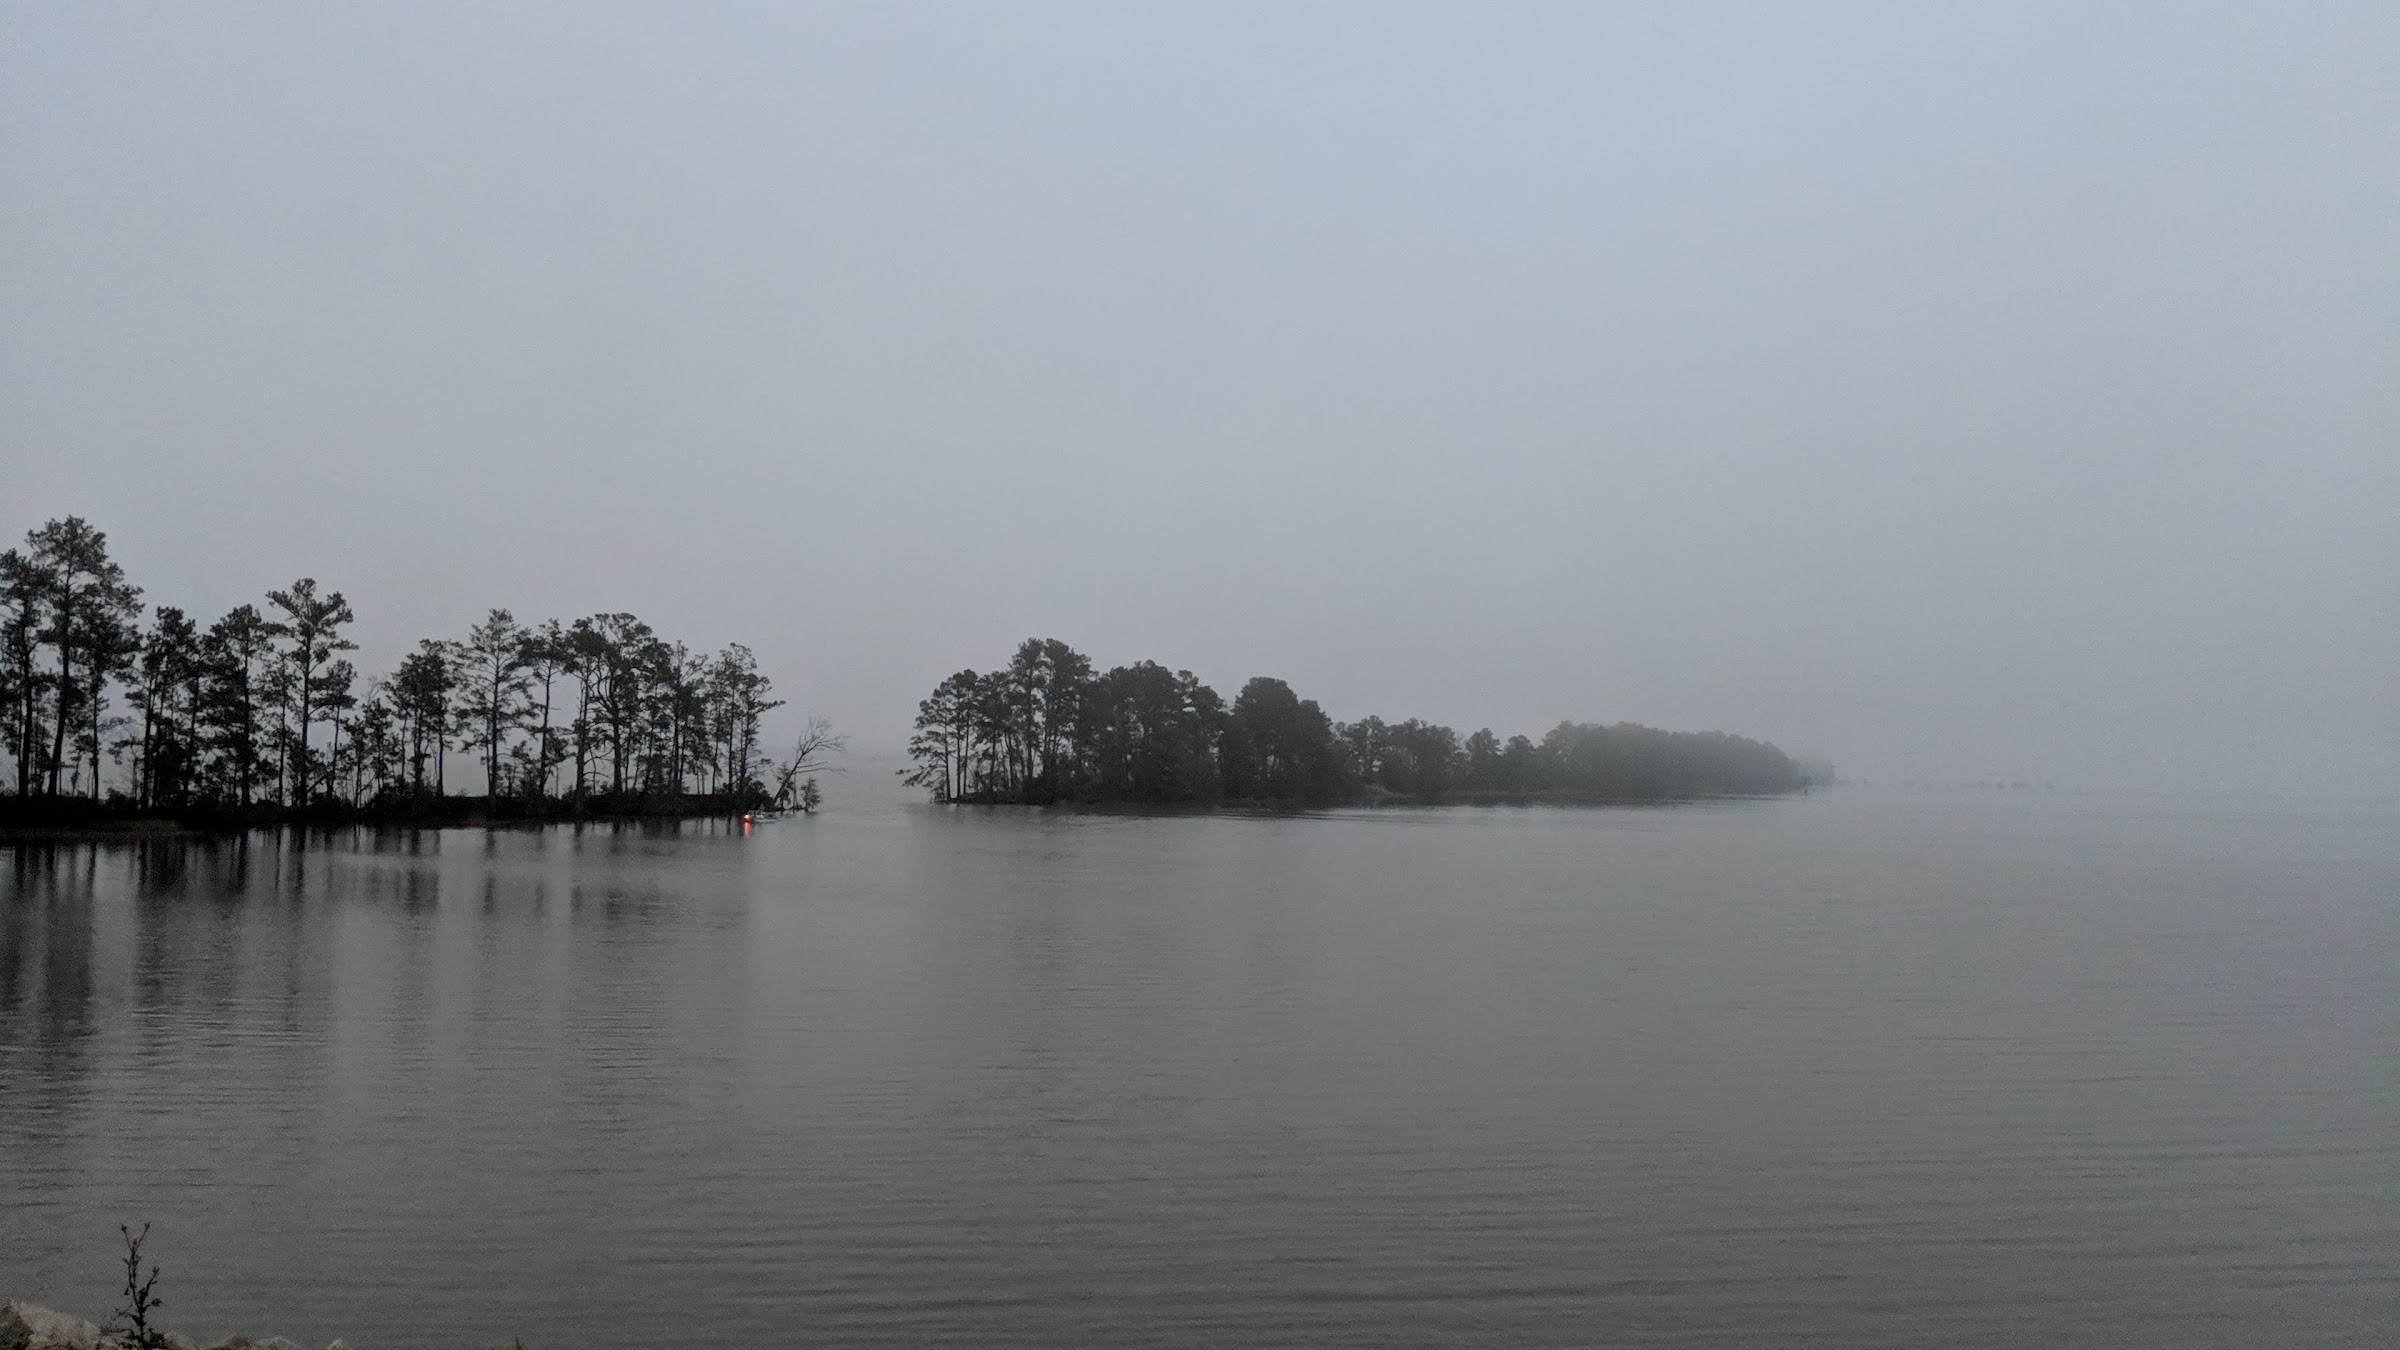 Lake Moultrie boat in the fog